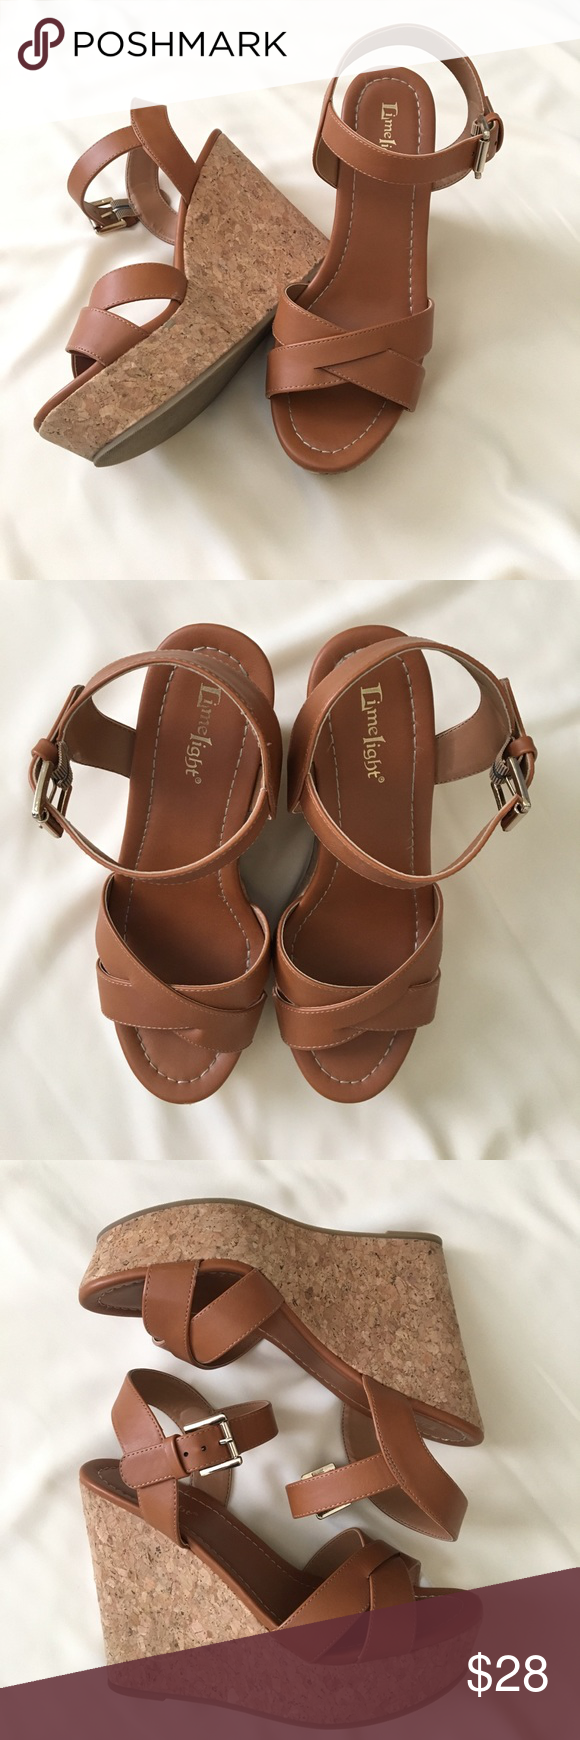 9776f1b31f1 Limelight Brown Wedge Sandals Approx. 5